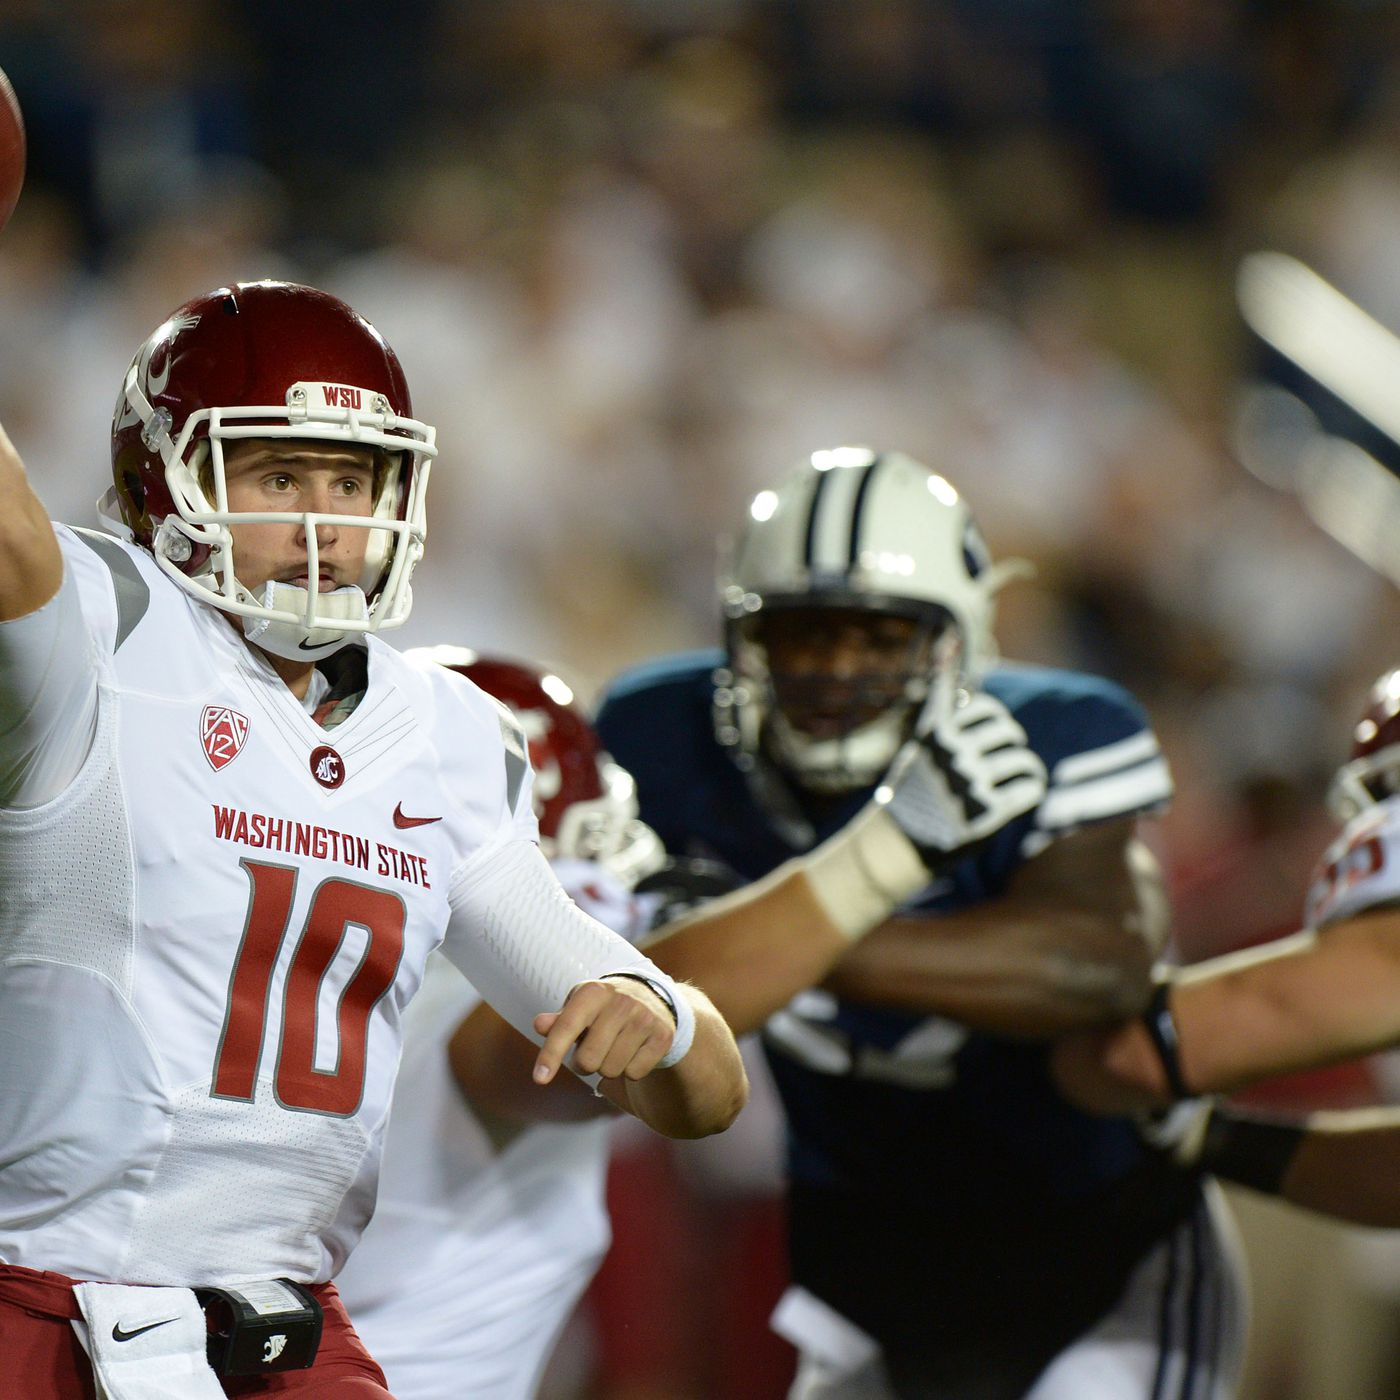 Washington State Vs Utah 2012 Tv Schedule Game Time Spread And More Sb Nation Seattle